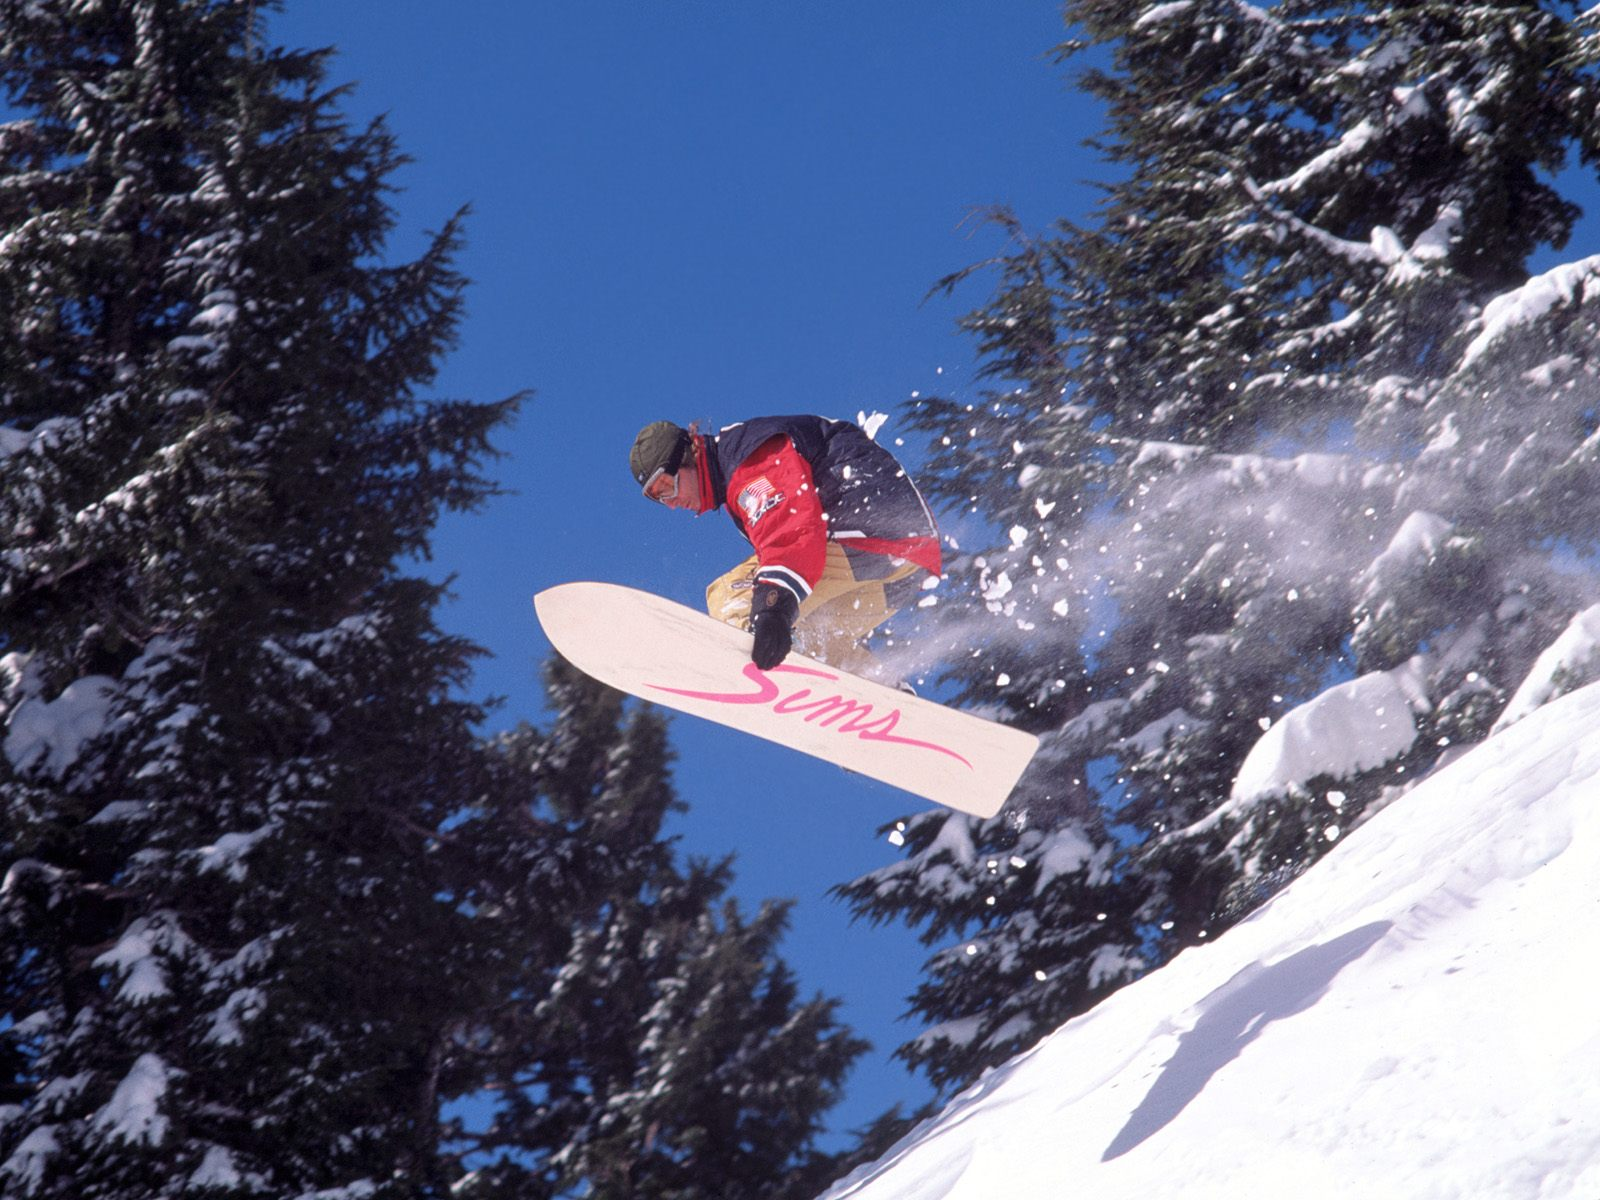 extreme snowboarding wallpapers - photo #4